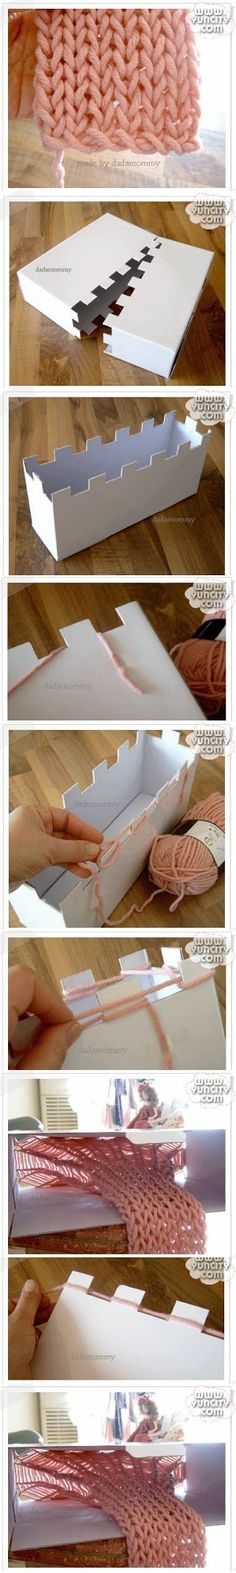 knitting loom from a cardboard box!